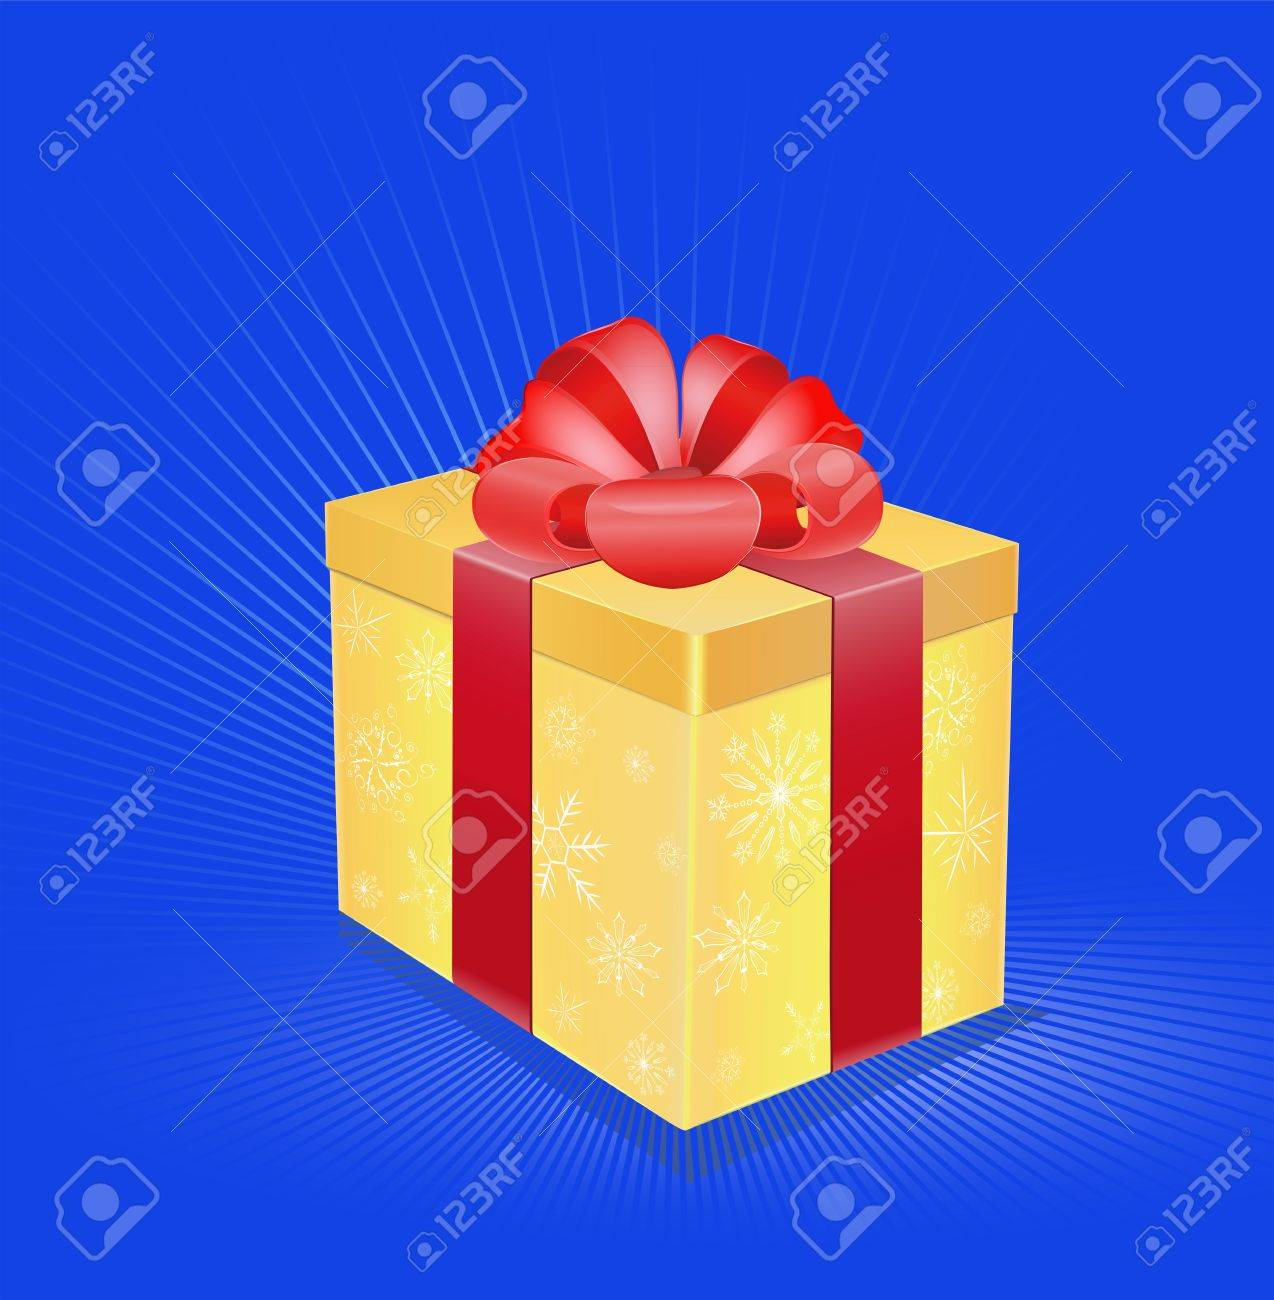 card the image a gift with a ribbon Stock Vector - 16418708